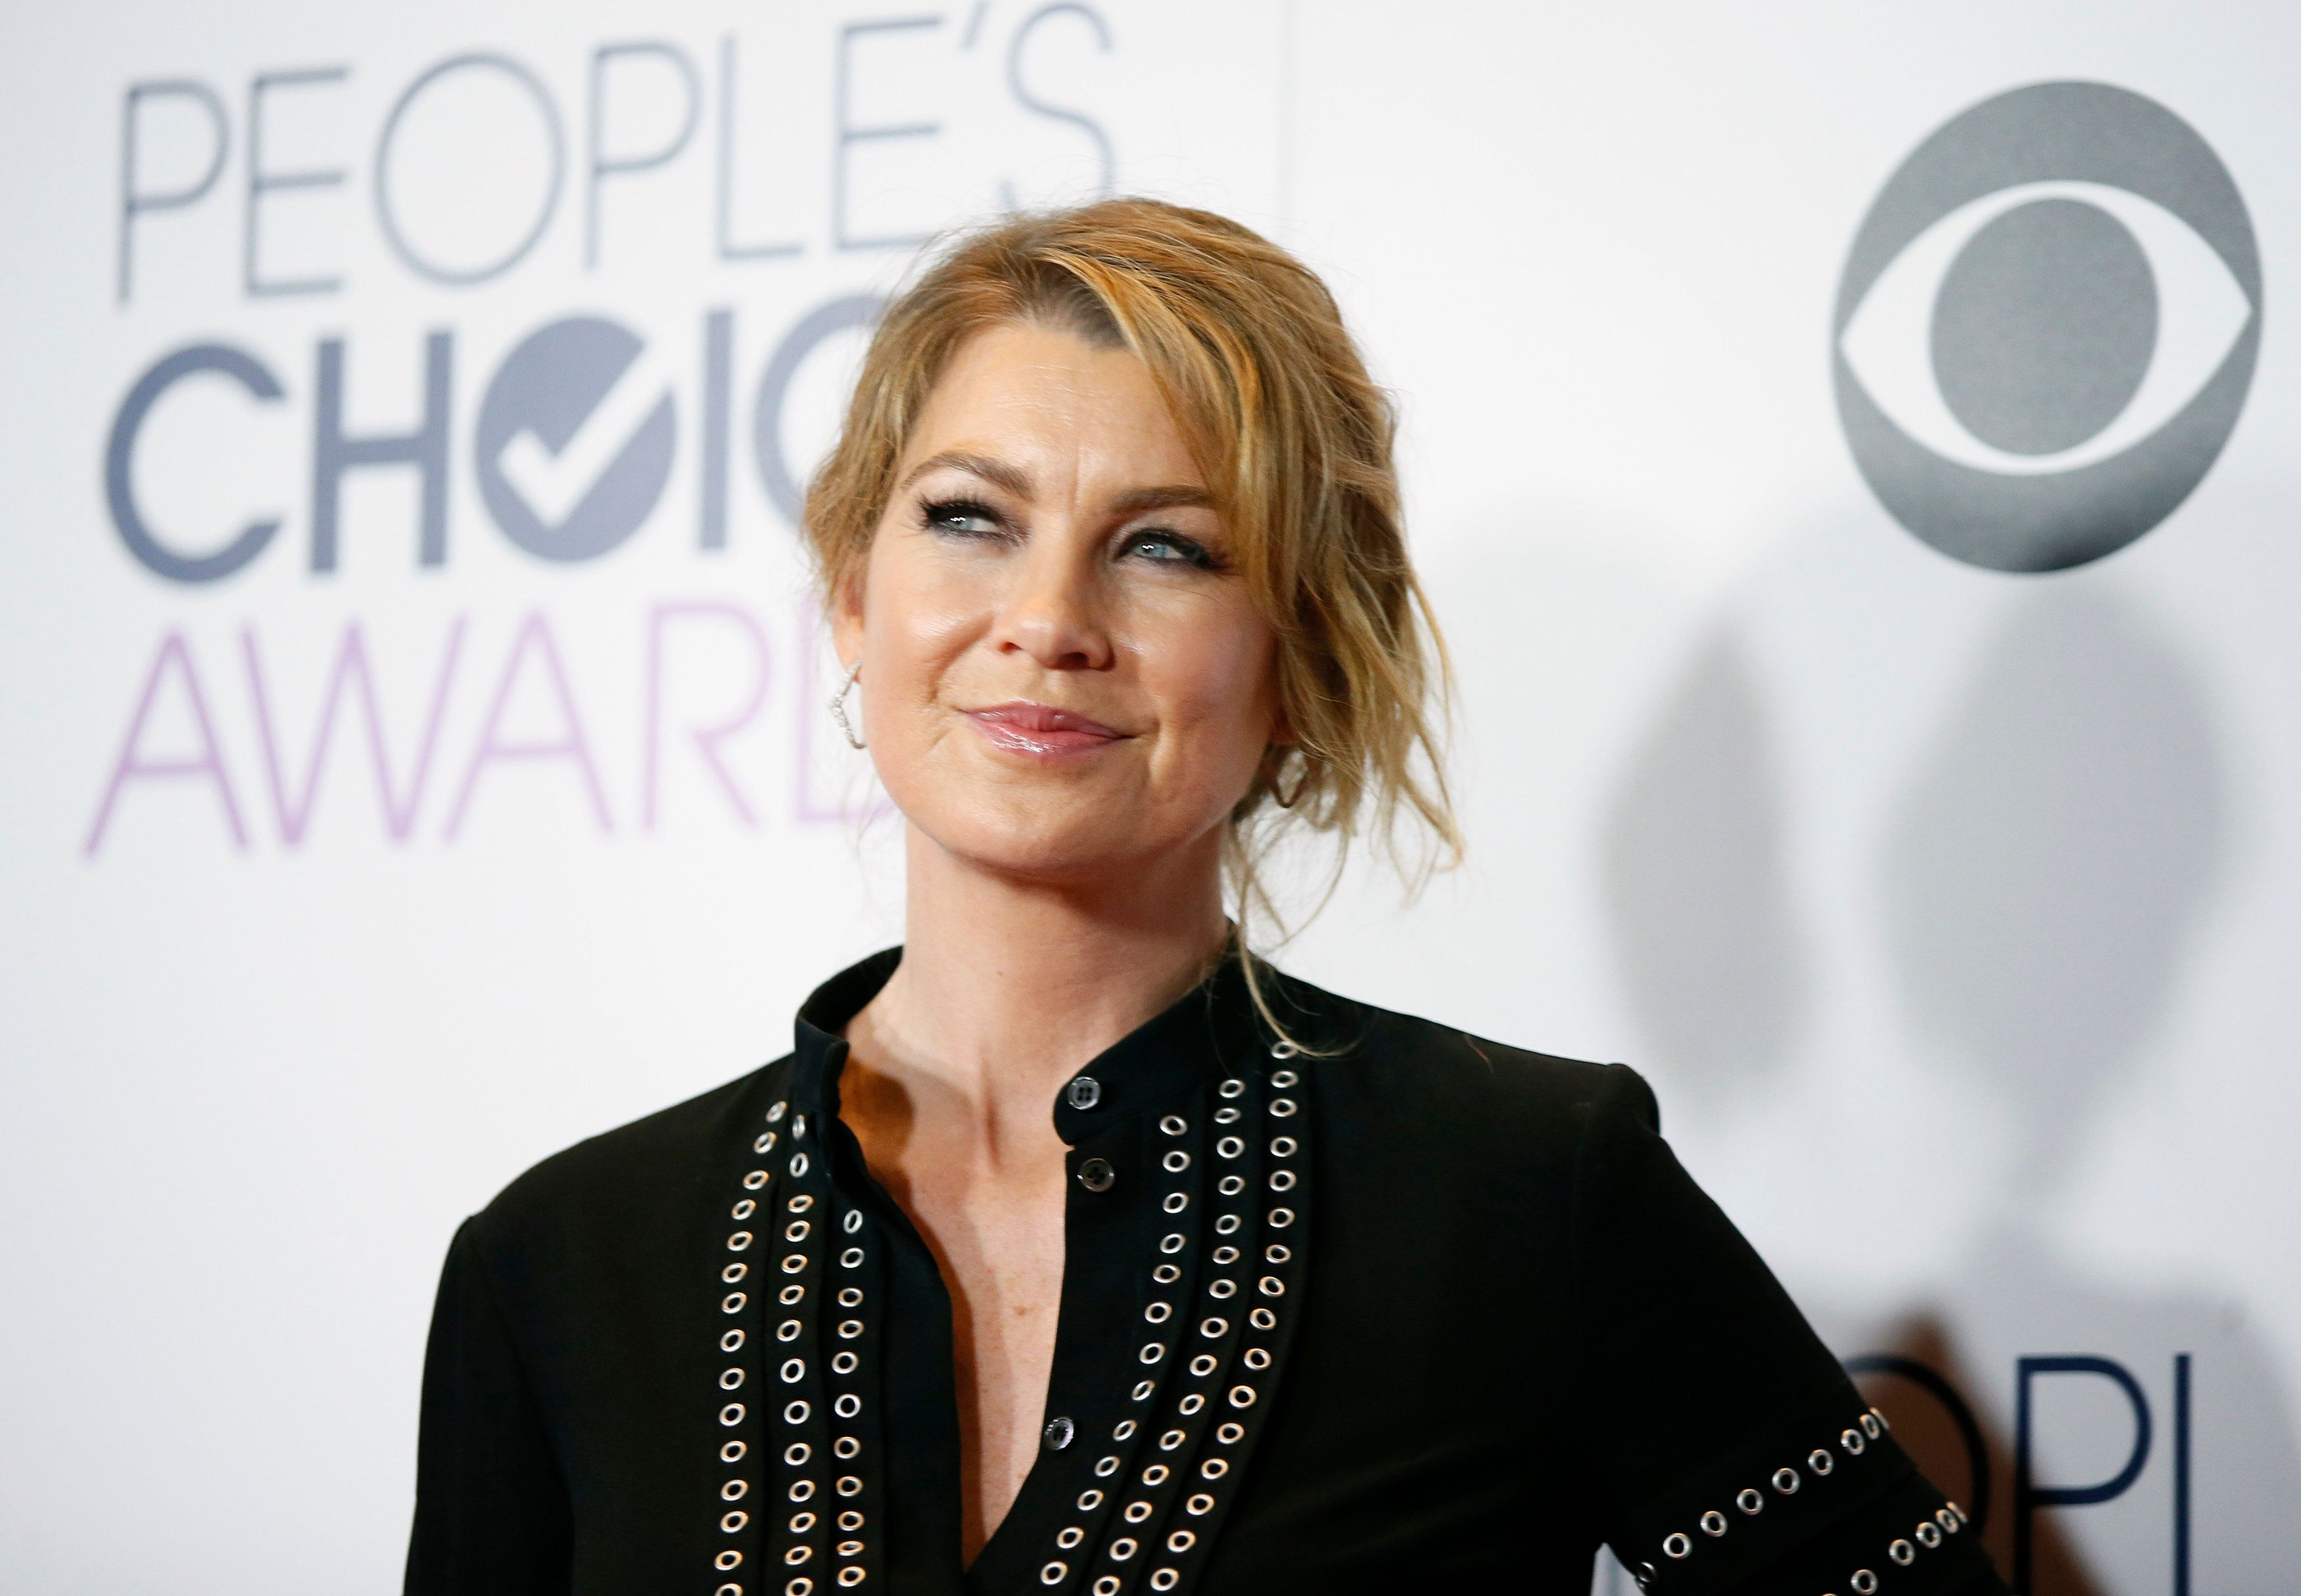 Actress Ellen Pompeo poses backstage during the People's Choice Awards 2016 in Los Angeles, California January 6, 2016.  REUTERS/Danny Moloshok